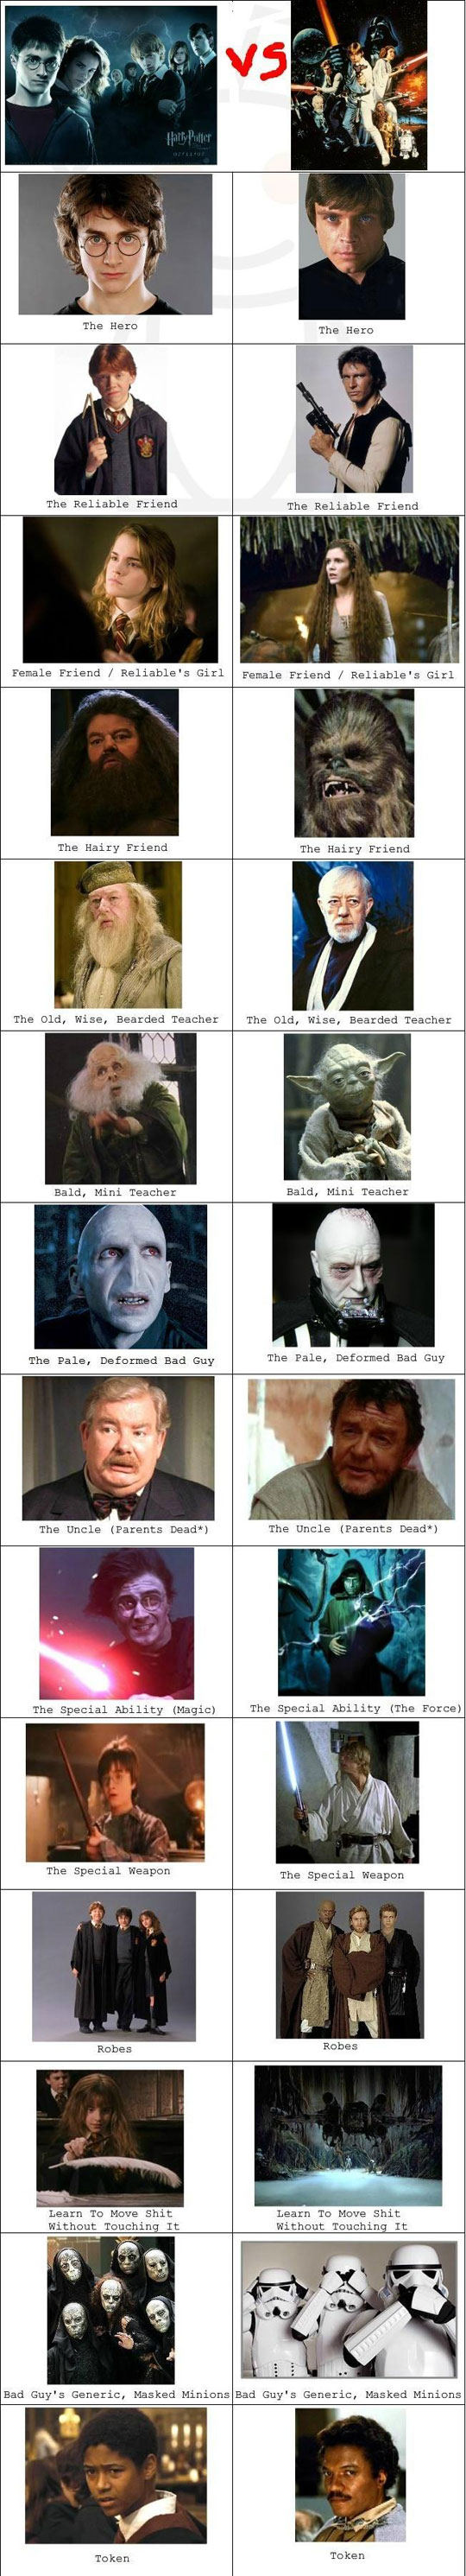 Harry Potter Vs Star Wars Star Wars Humor Harry Potter Funny Harry And Hermione